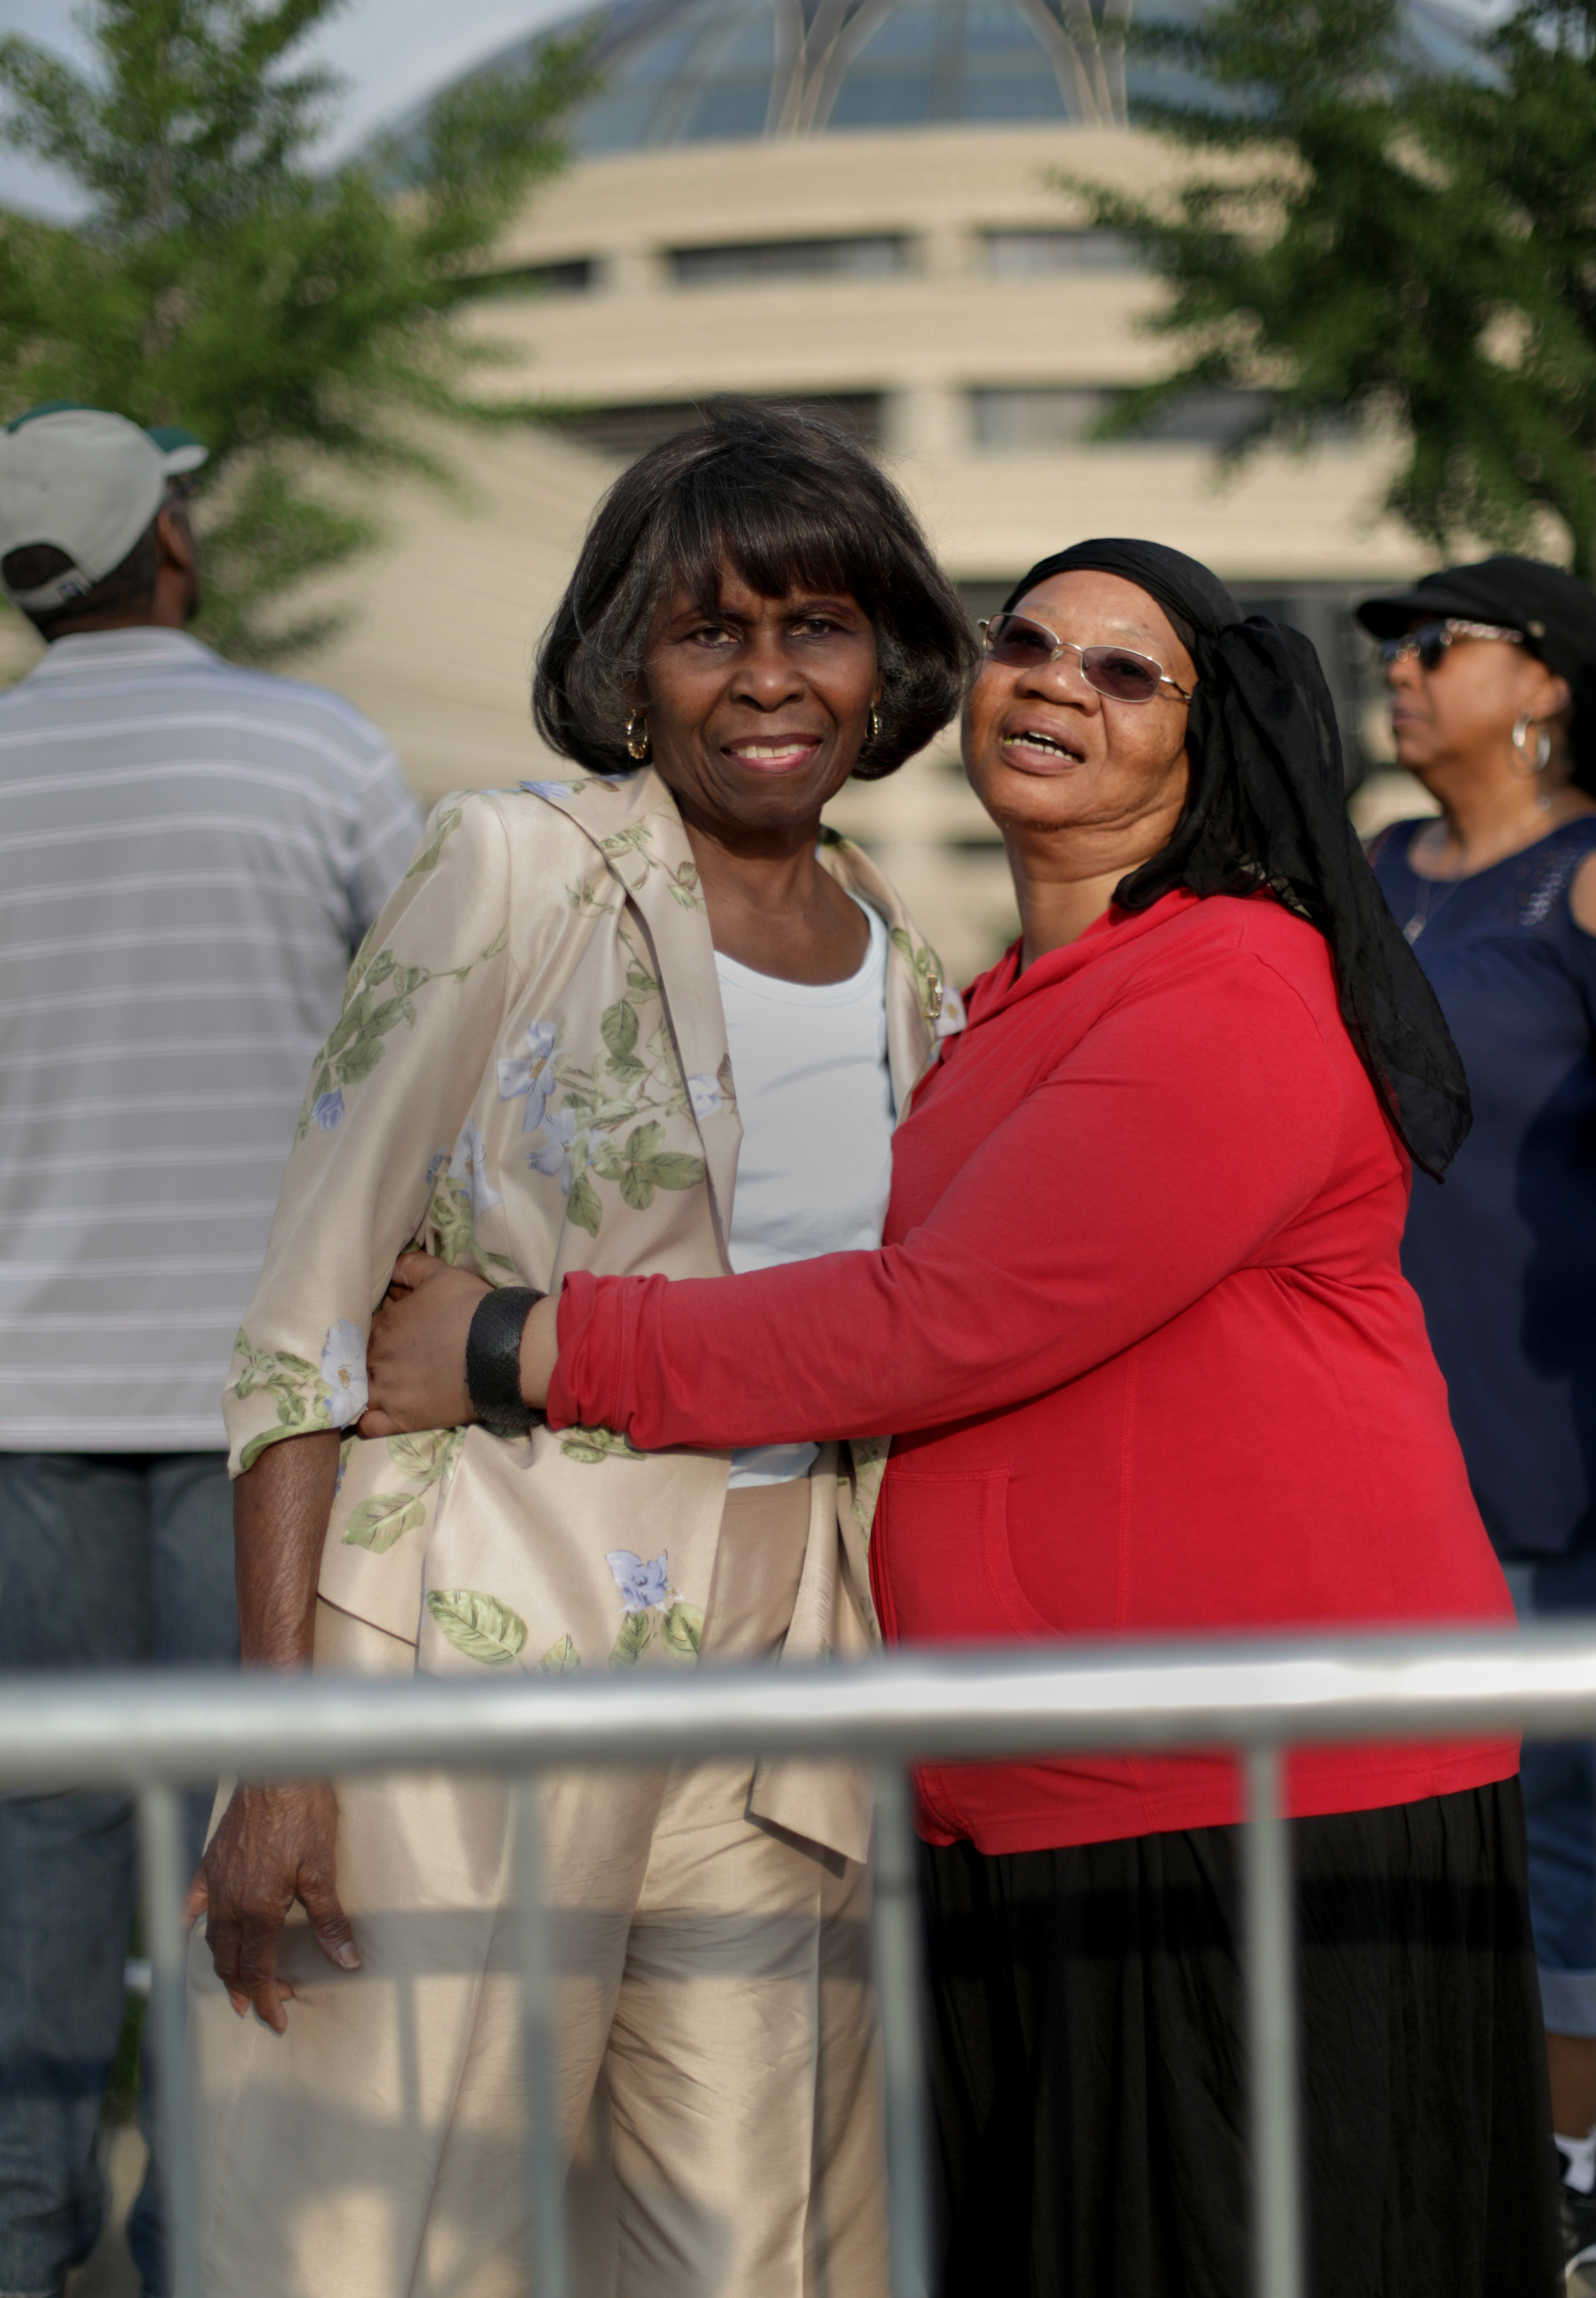 Mary McDonald, 75 of Southfield, left and Denise Washington of Highland Park. The two women just met while standing in line.